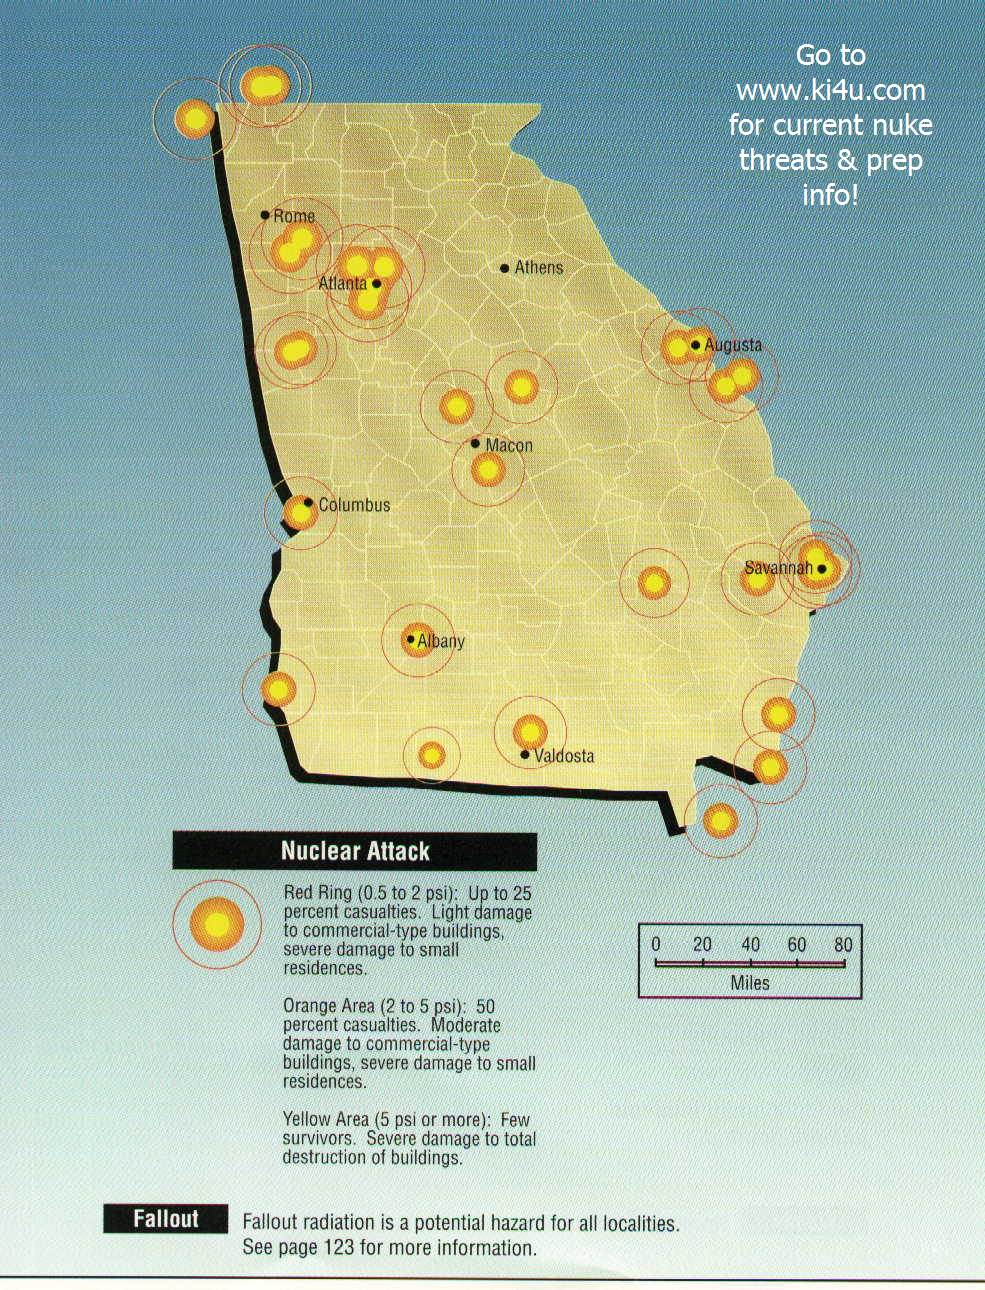 Nuclear War Fallout Shelter Survival Info For Georgia With FEMA - Us nuclear war fallout map